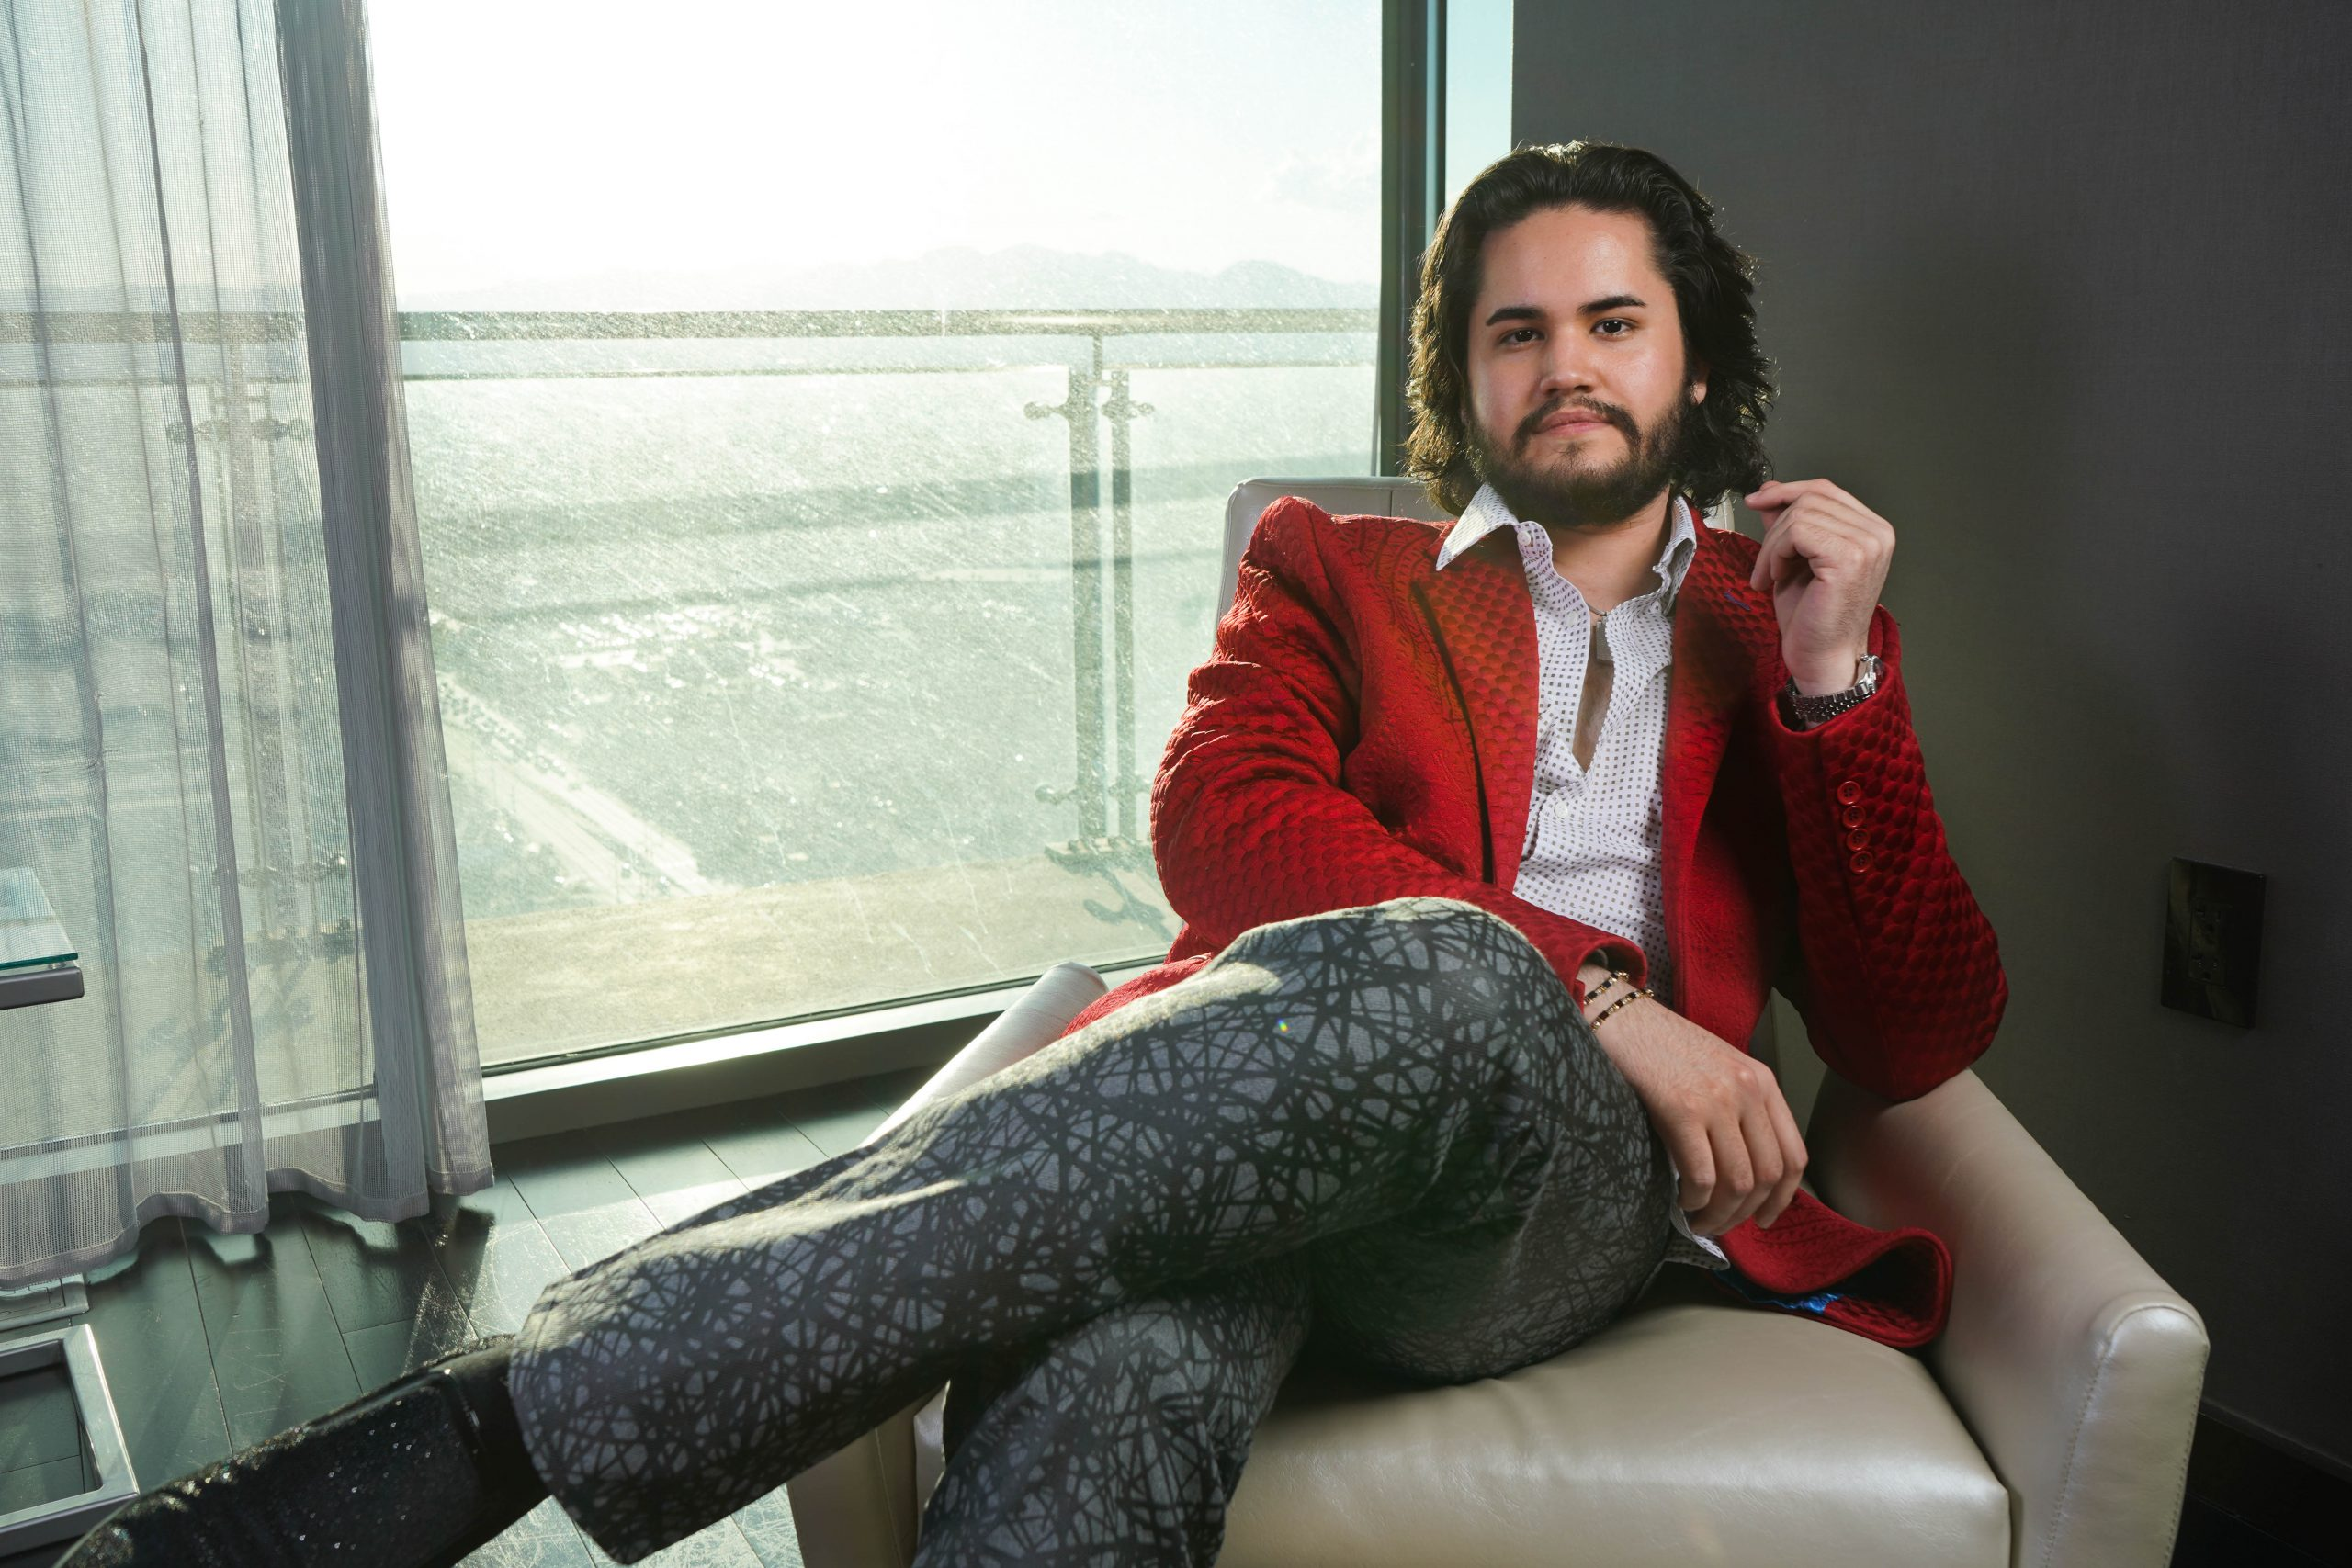 Roman Alexander Wellington in red jacket sitting down in laid back position scaled